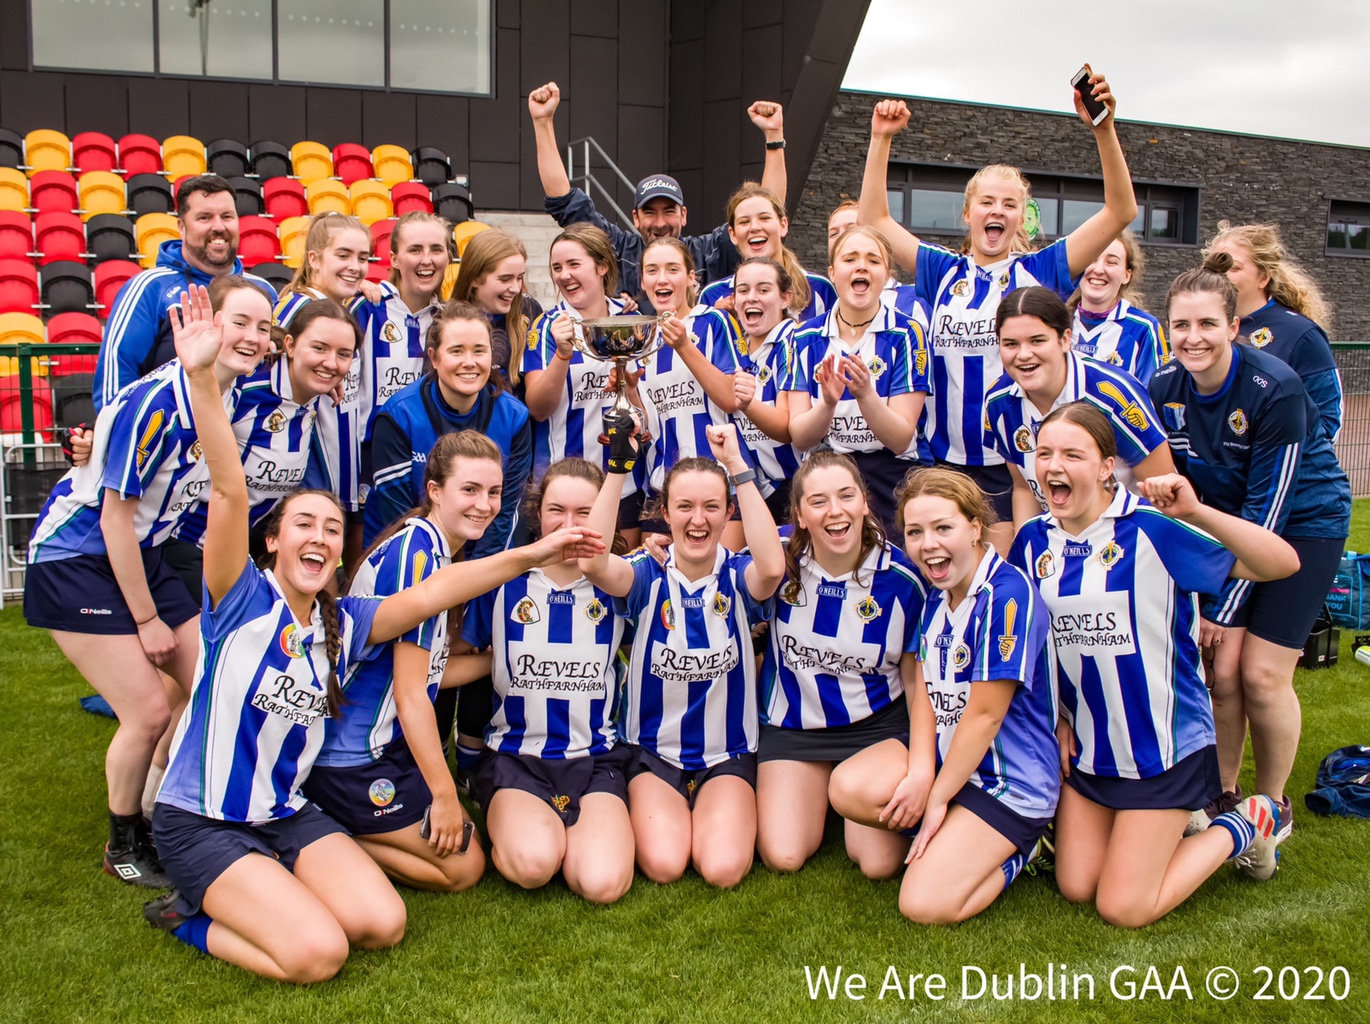 Ballyboden St Endas players celebrate on the pitch with the cup after winning the Intermediate 2 championship title.